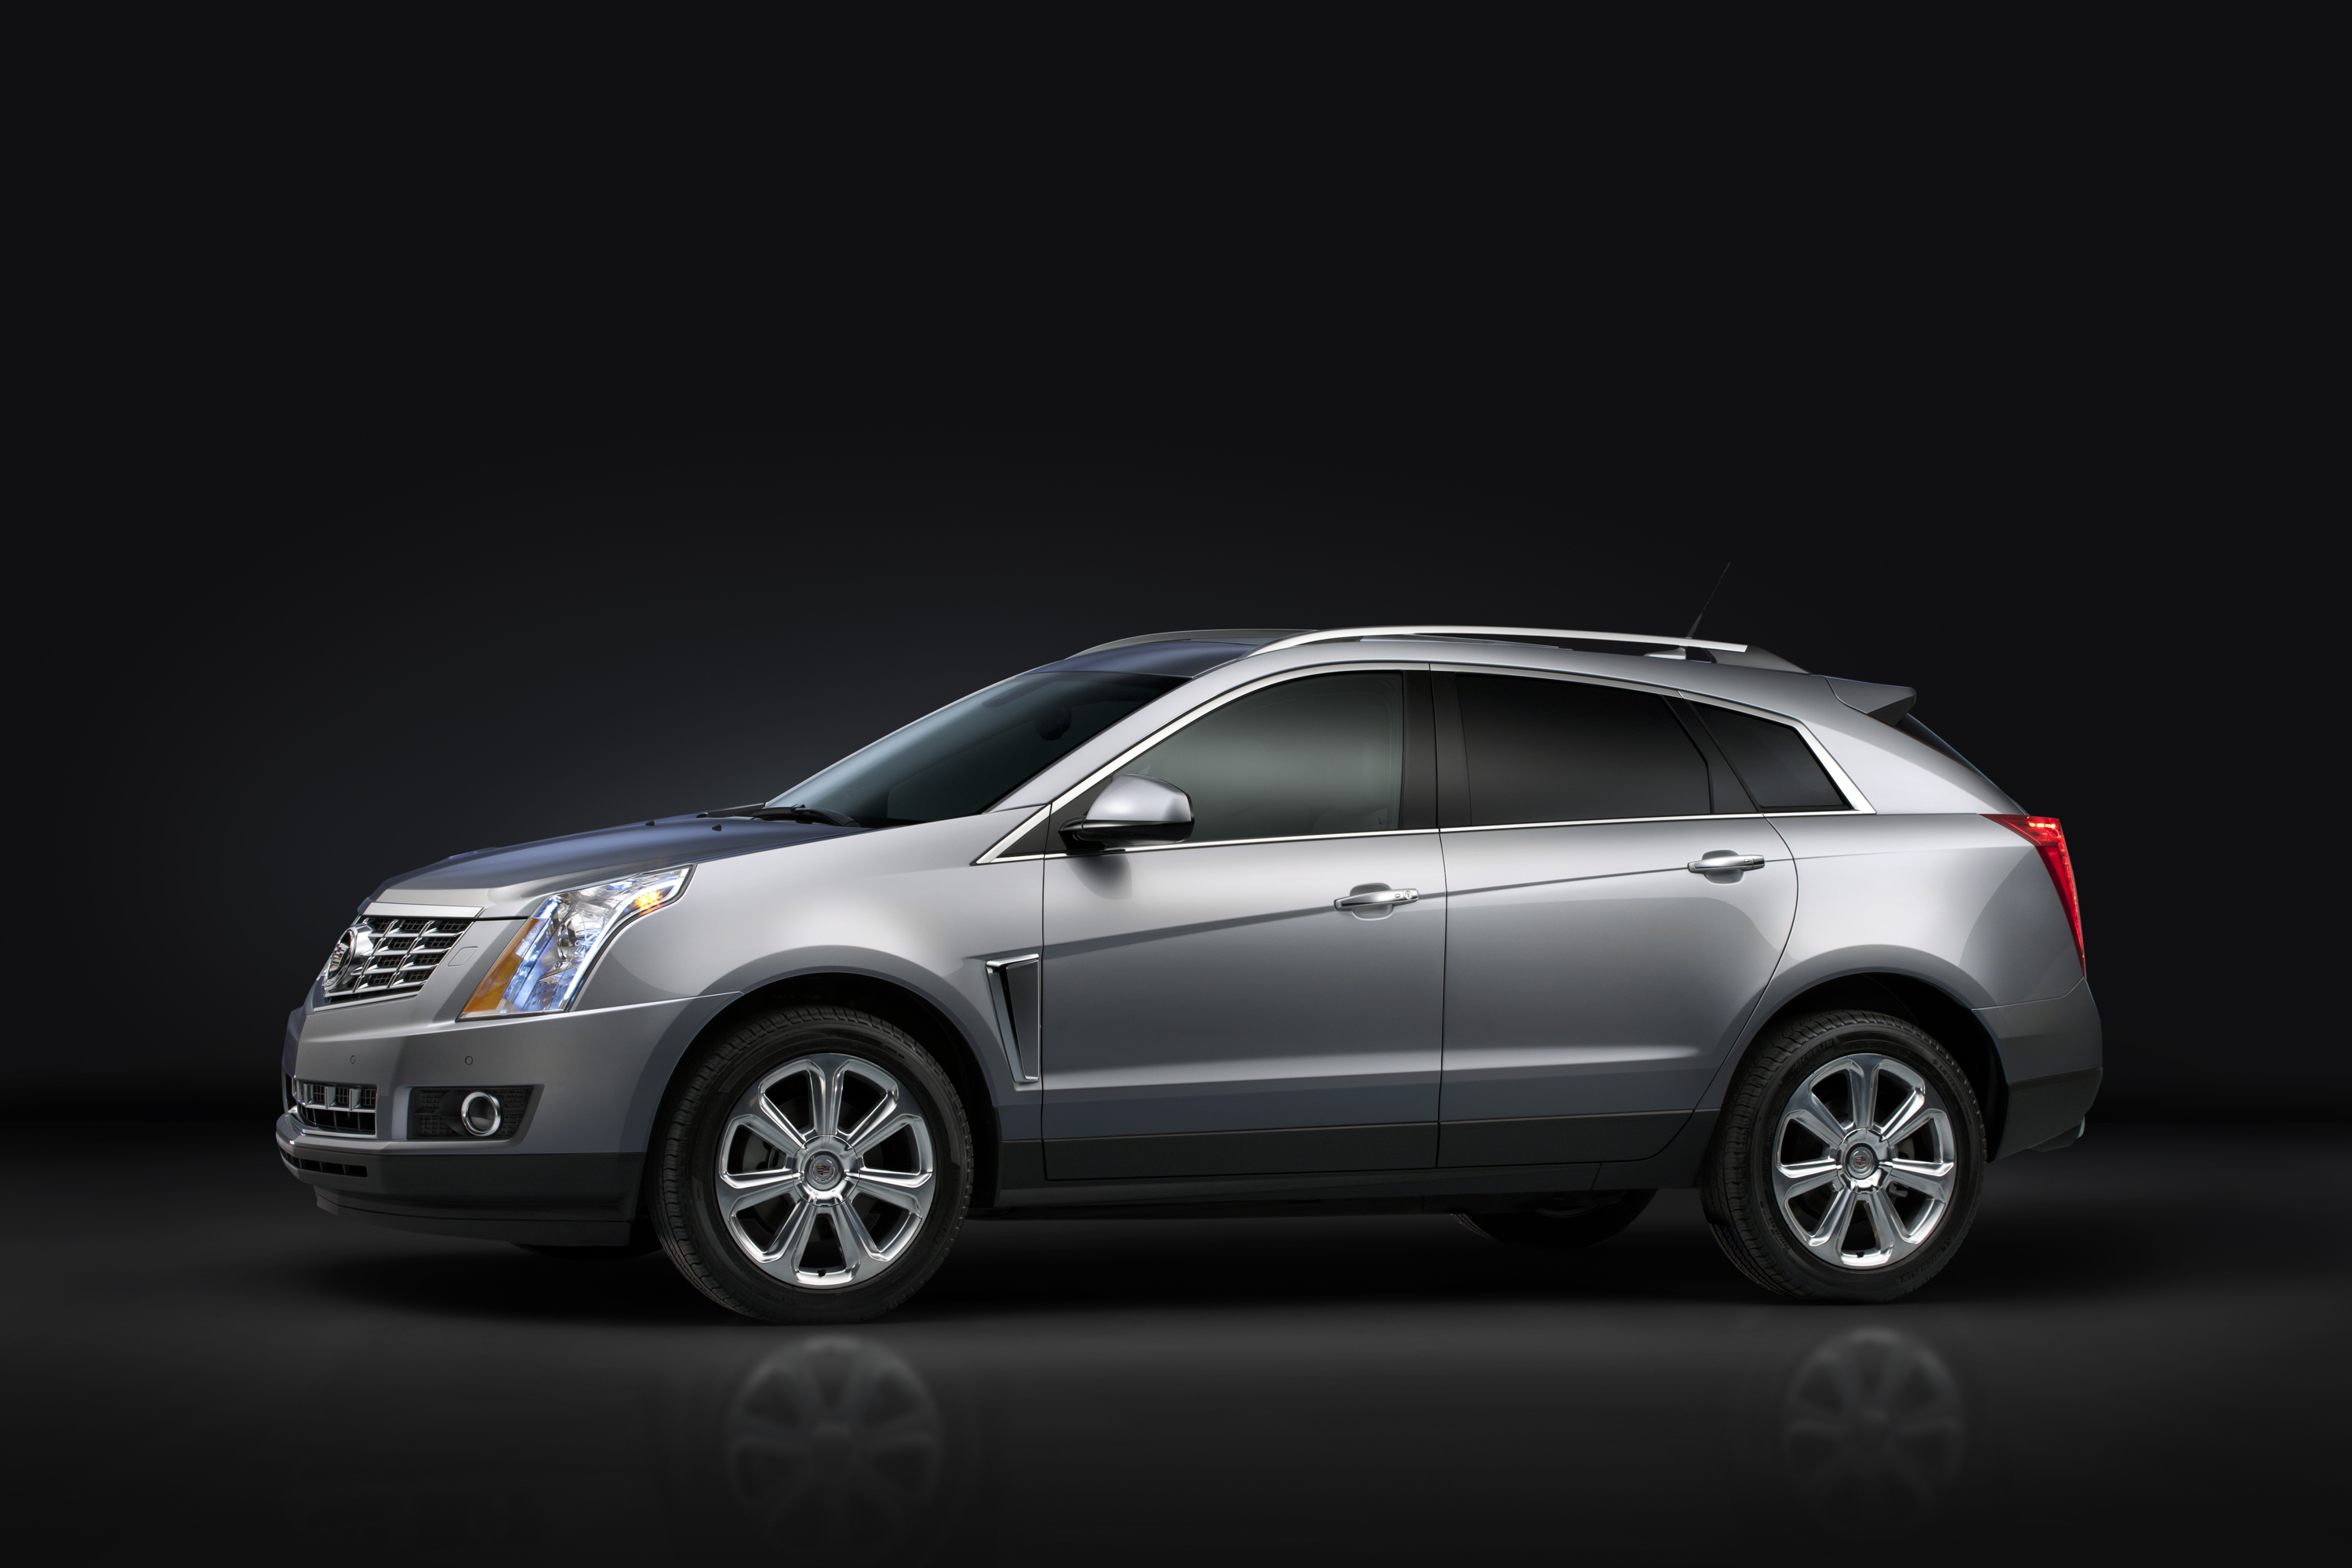 there the srx slip cadillac fine it tricky new crossover and years model been one taken number always a of limited had s lot mess to care selling blog many with this for design